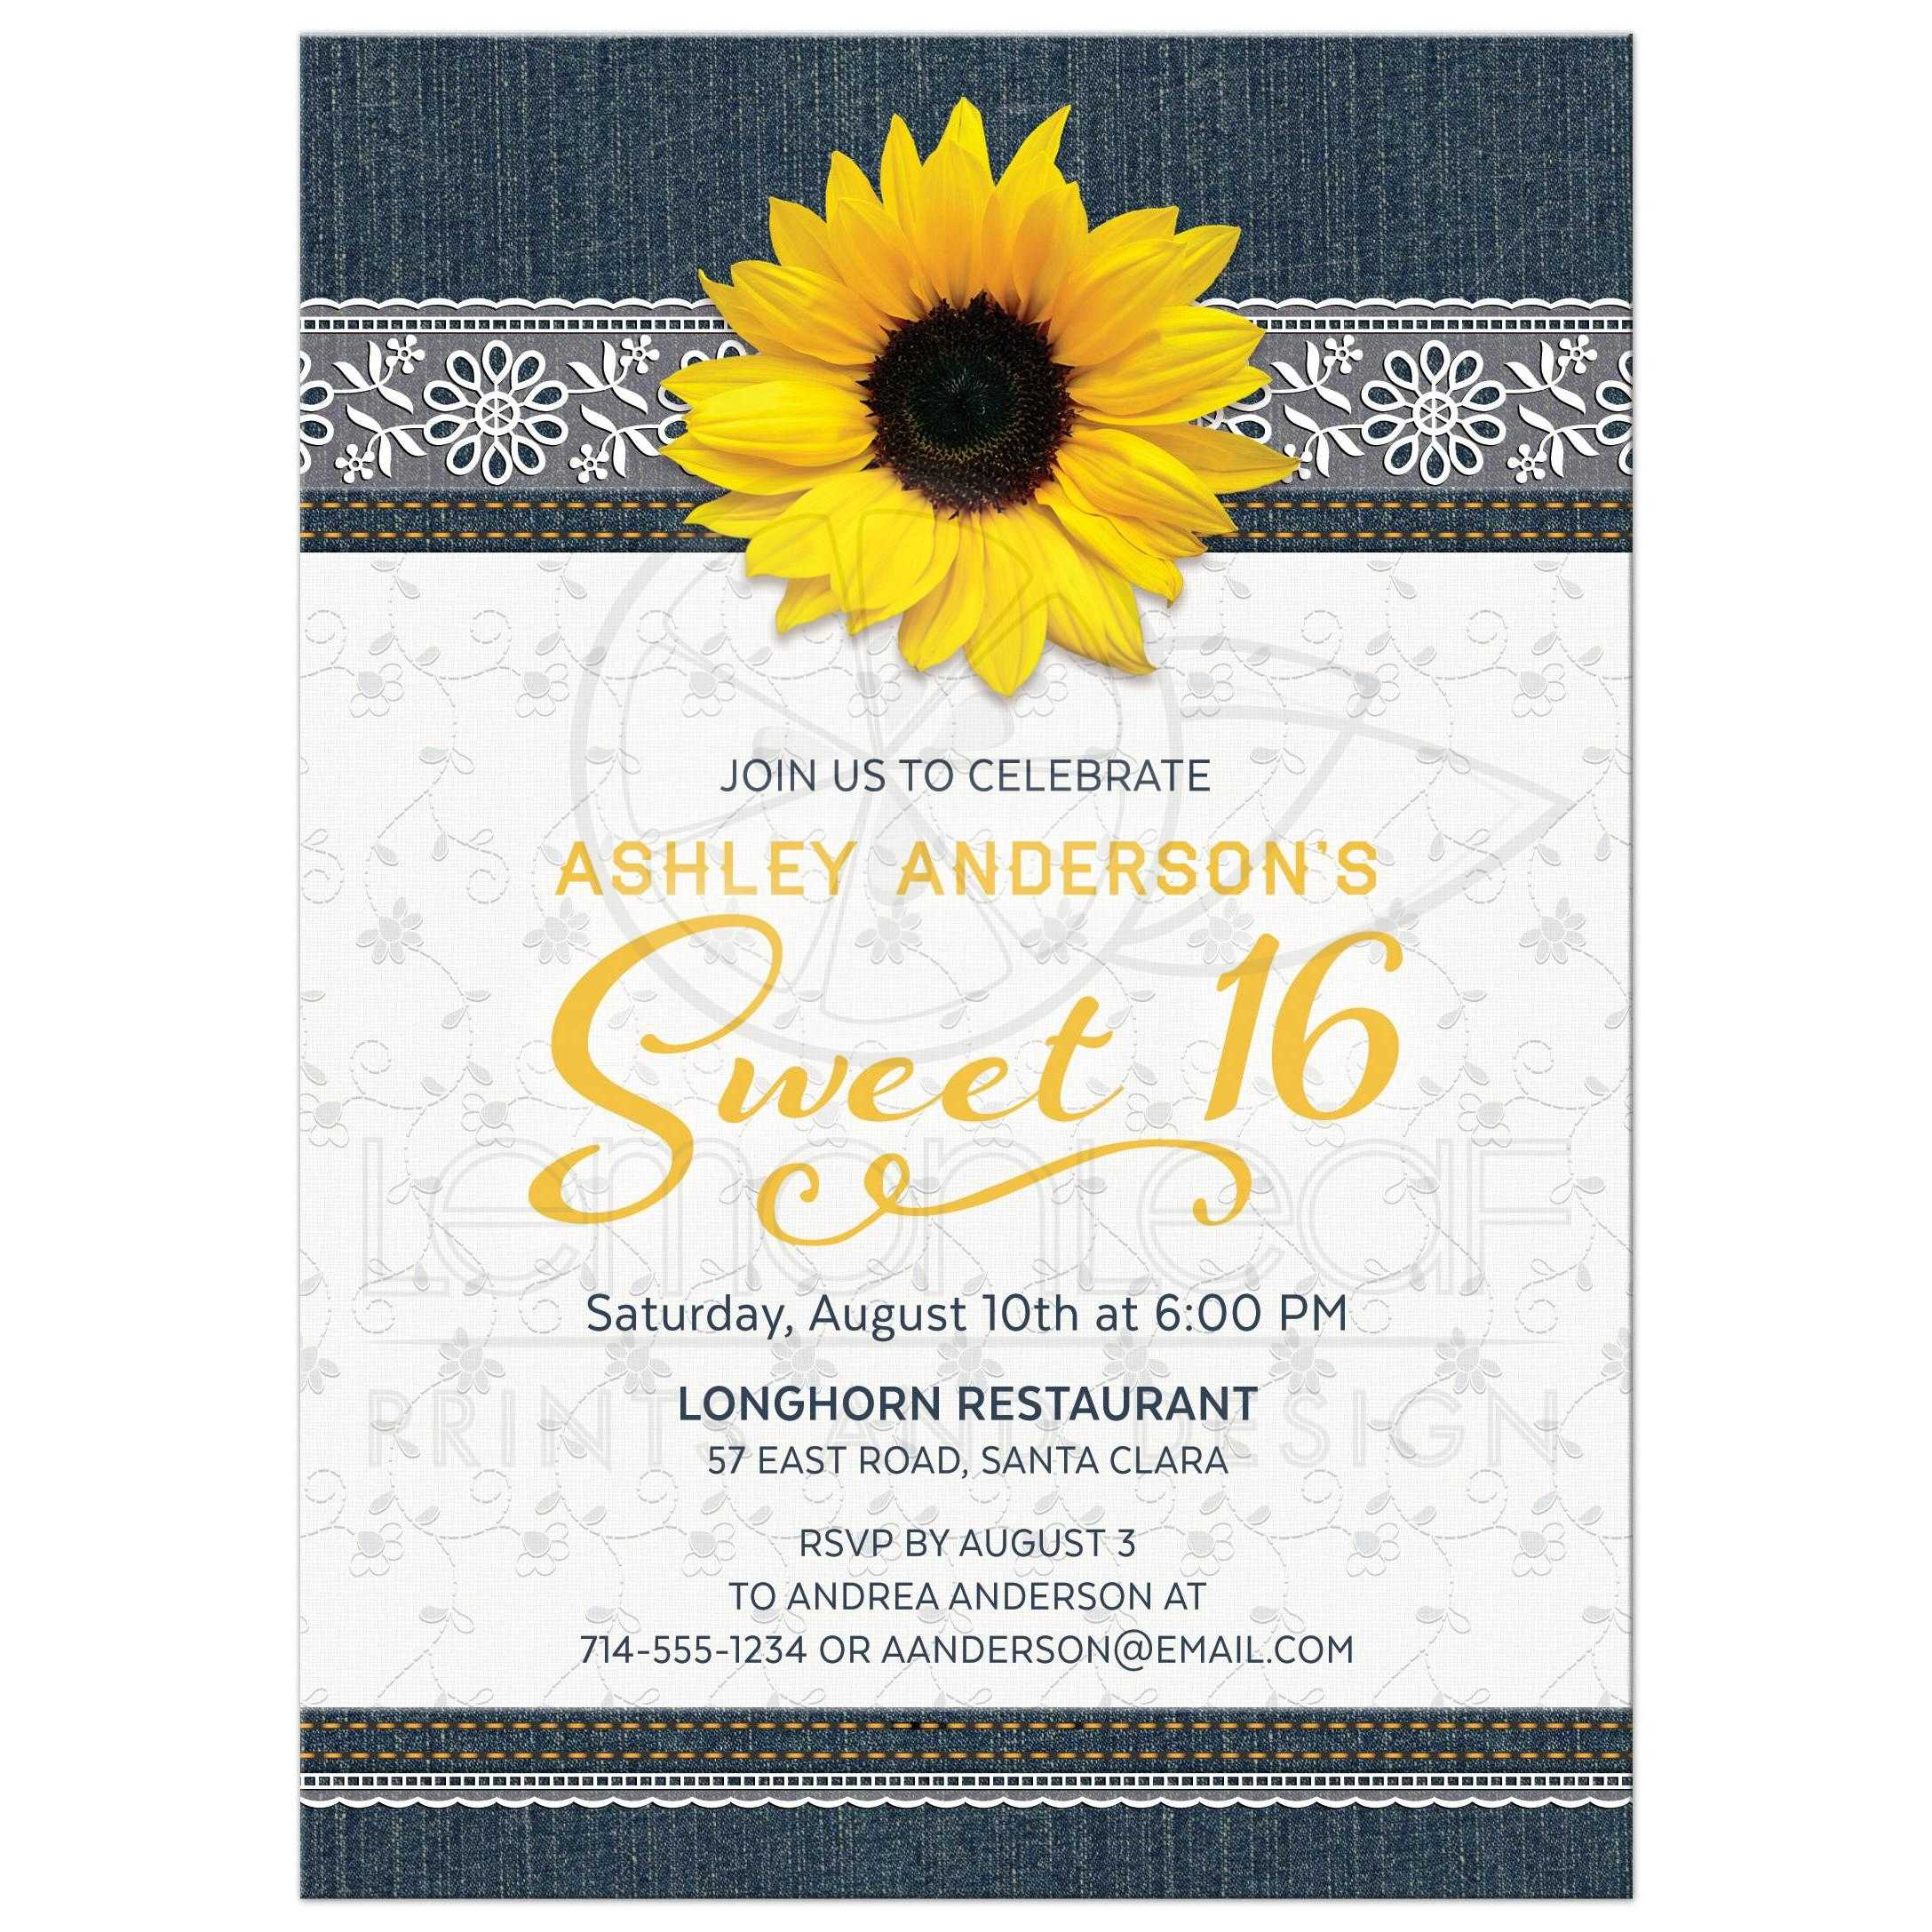 Sunflower Sweet 16 Invitation | Denim Lace Country Style